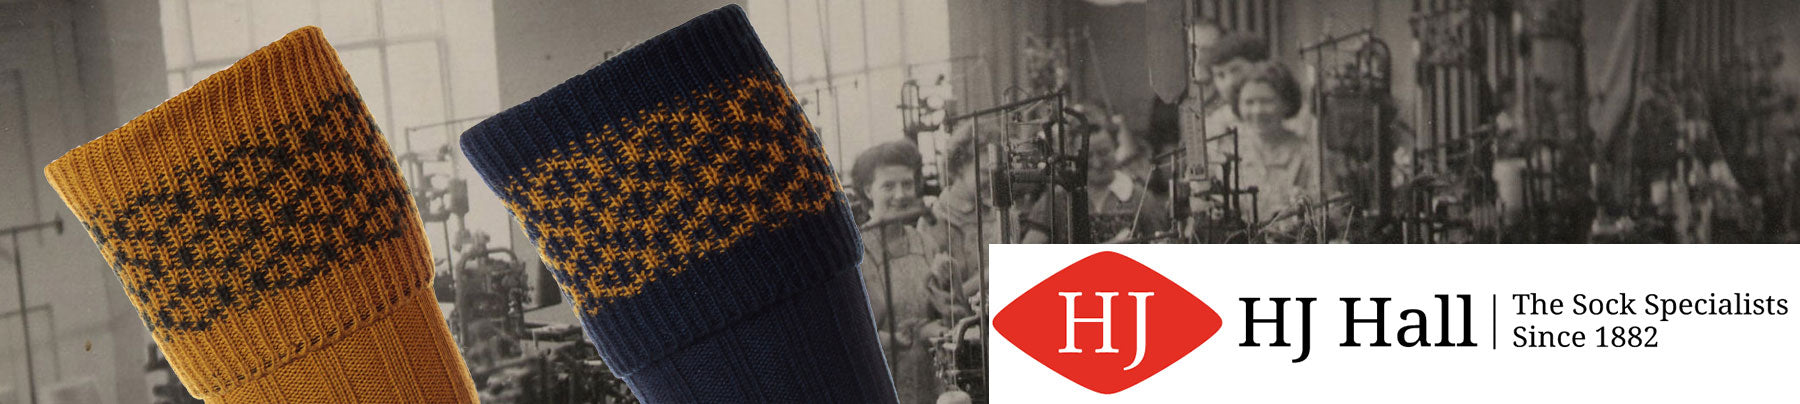 hj hall fine british socks